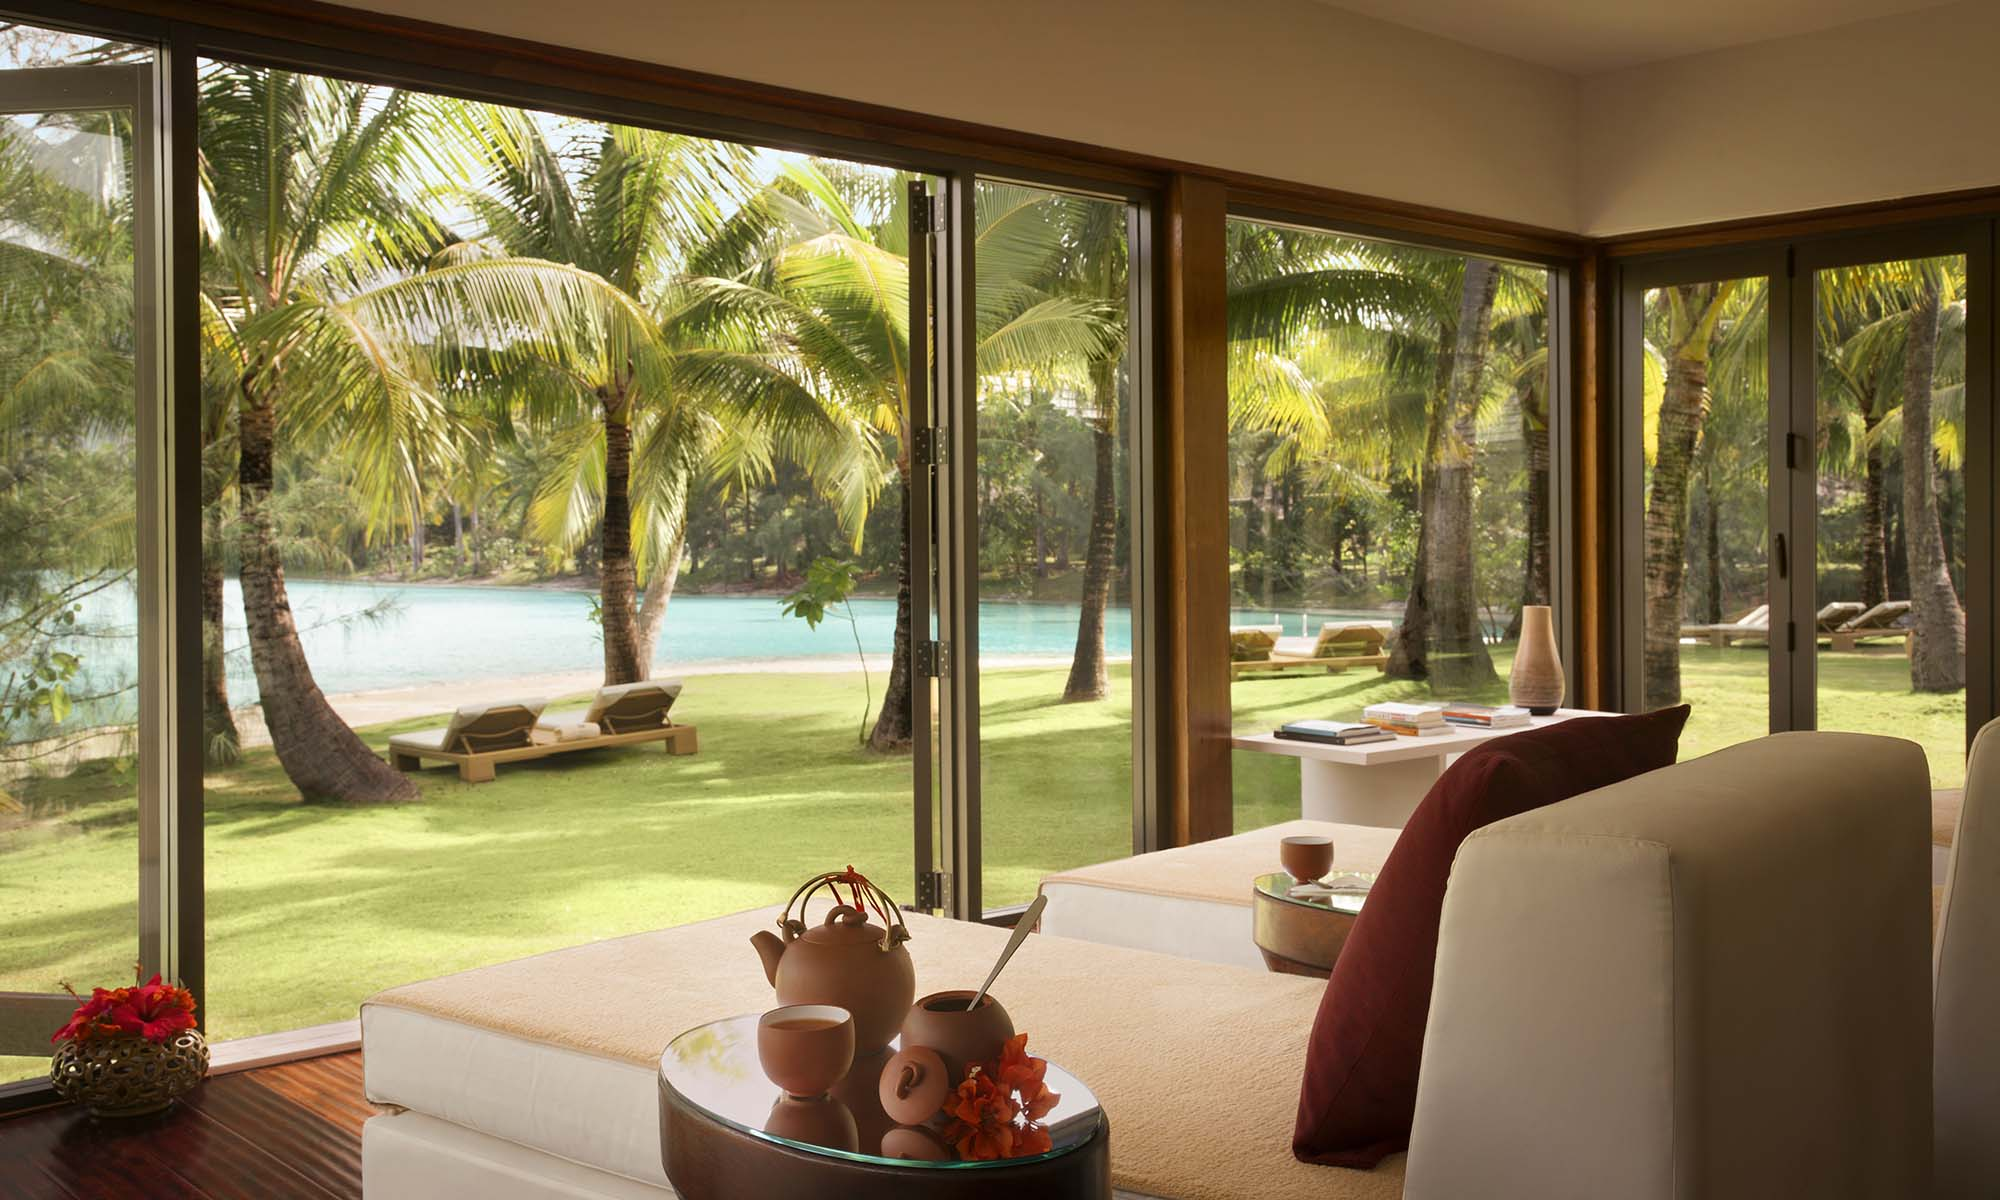 St Regis Bora Bora Resort, Miri Miri Spa by CLARINS